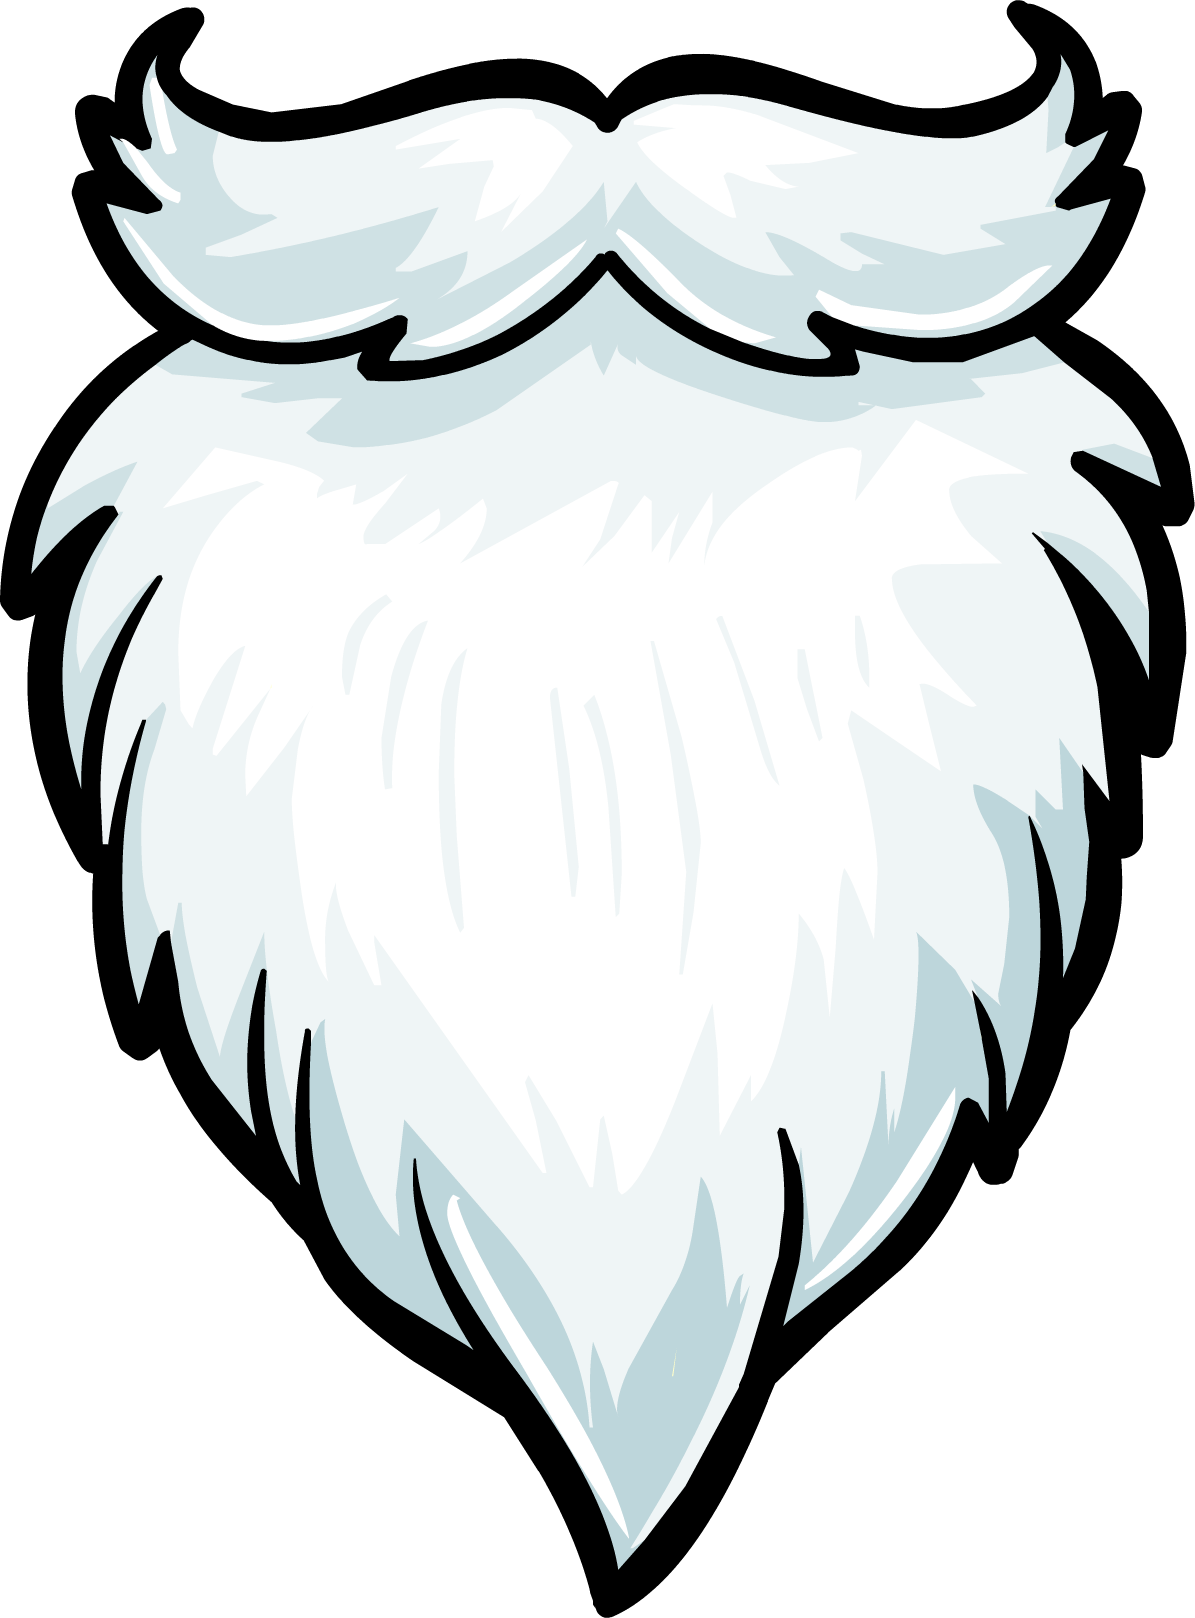 Festival clipart concert fan. Santa beard google search